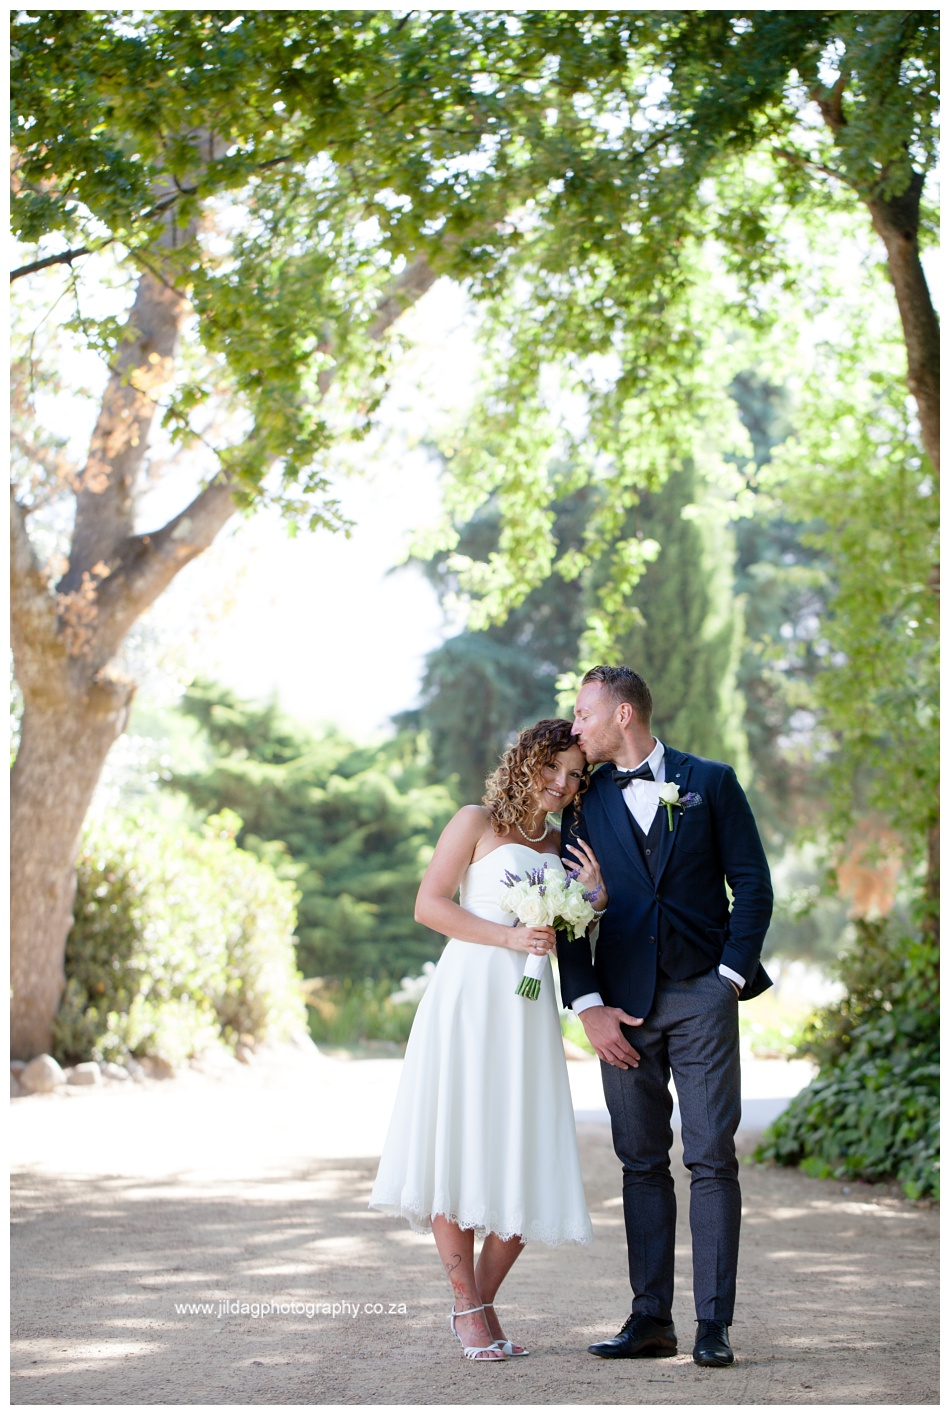 Jilda-G-Photography-wedding-Boschendal_0537